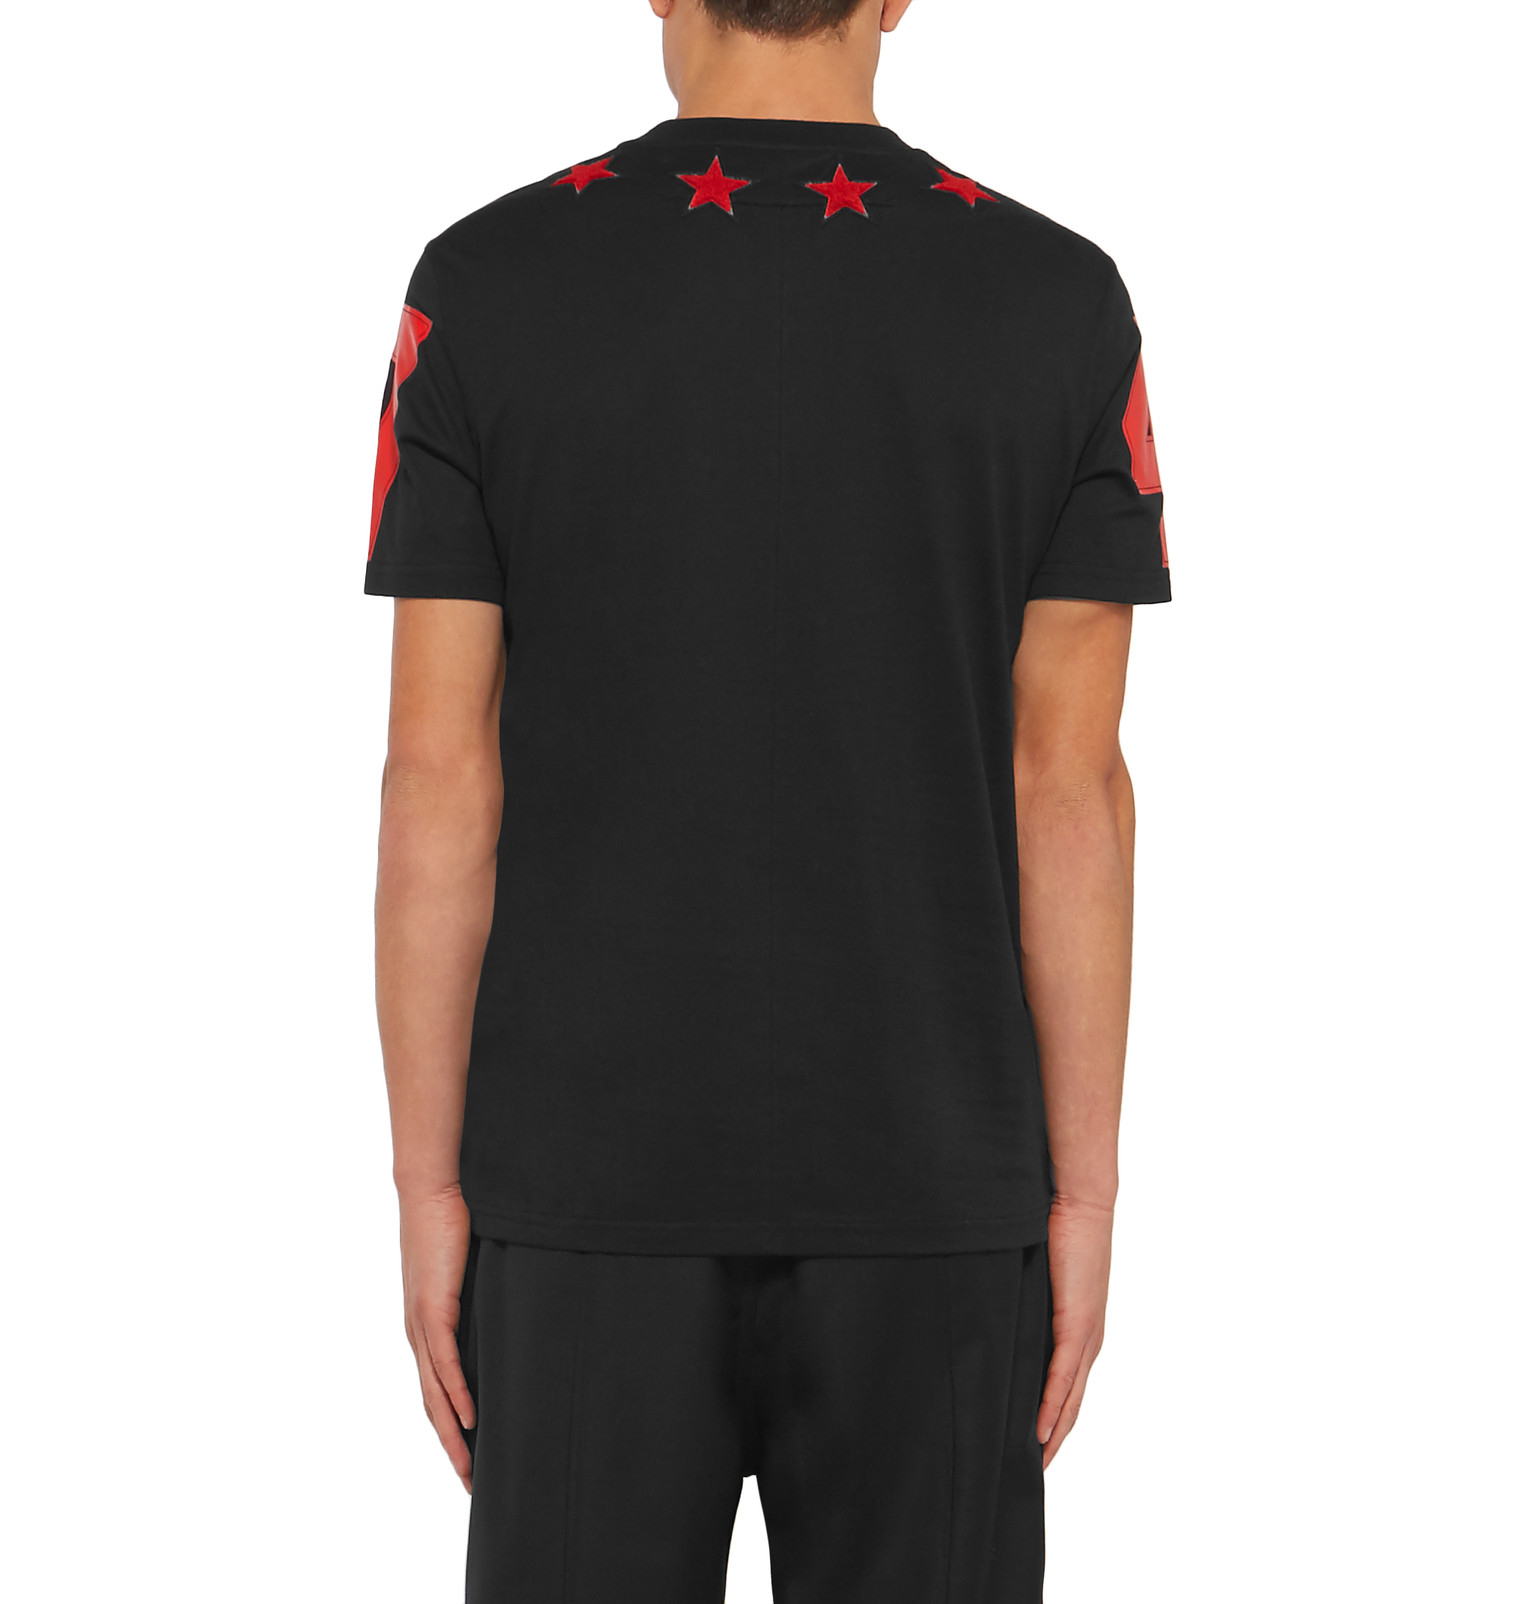 1cb616844ec2a Givenchy Cuban-fit Star-appliqué Cotton-jersey T-shirt in Black for ...